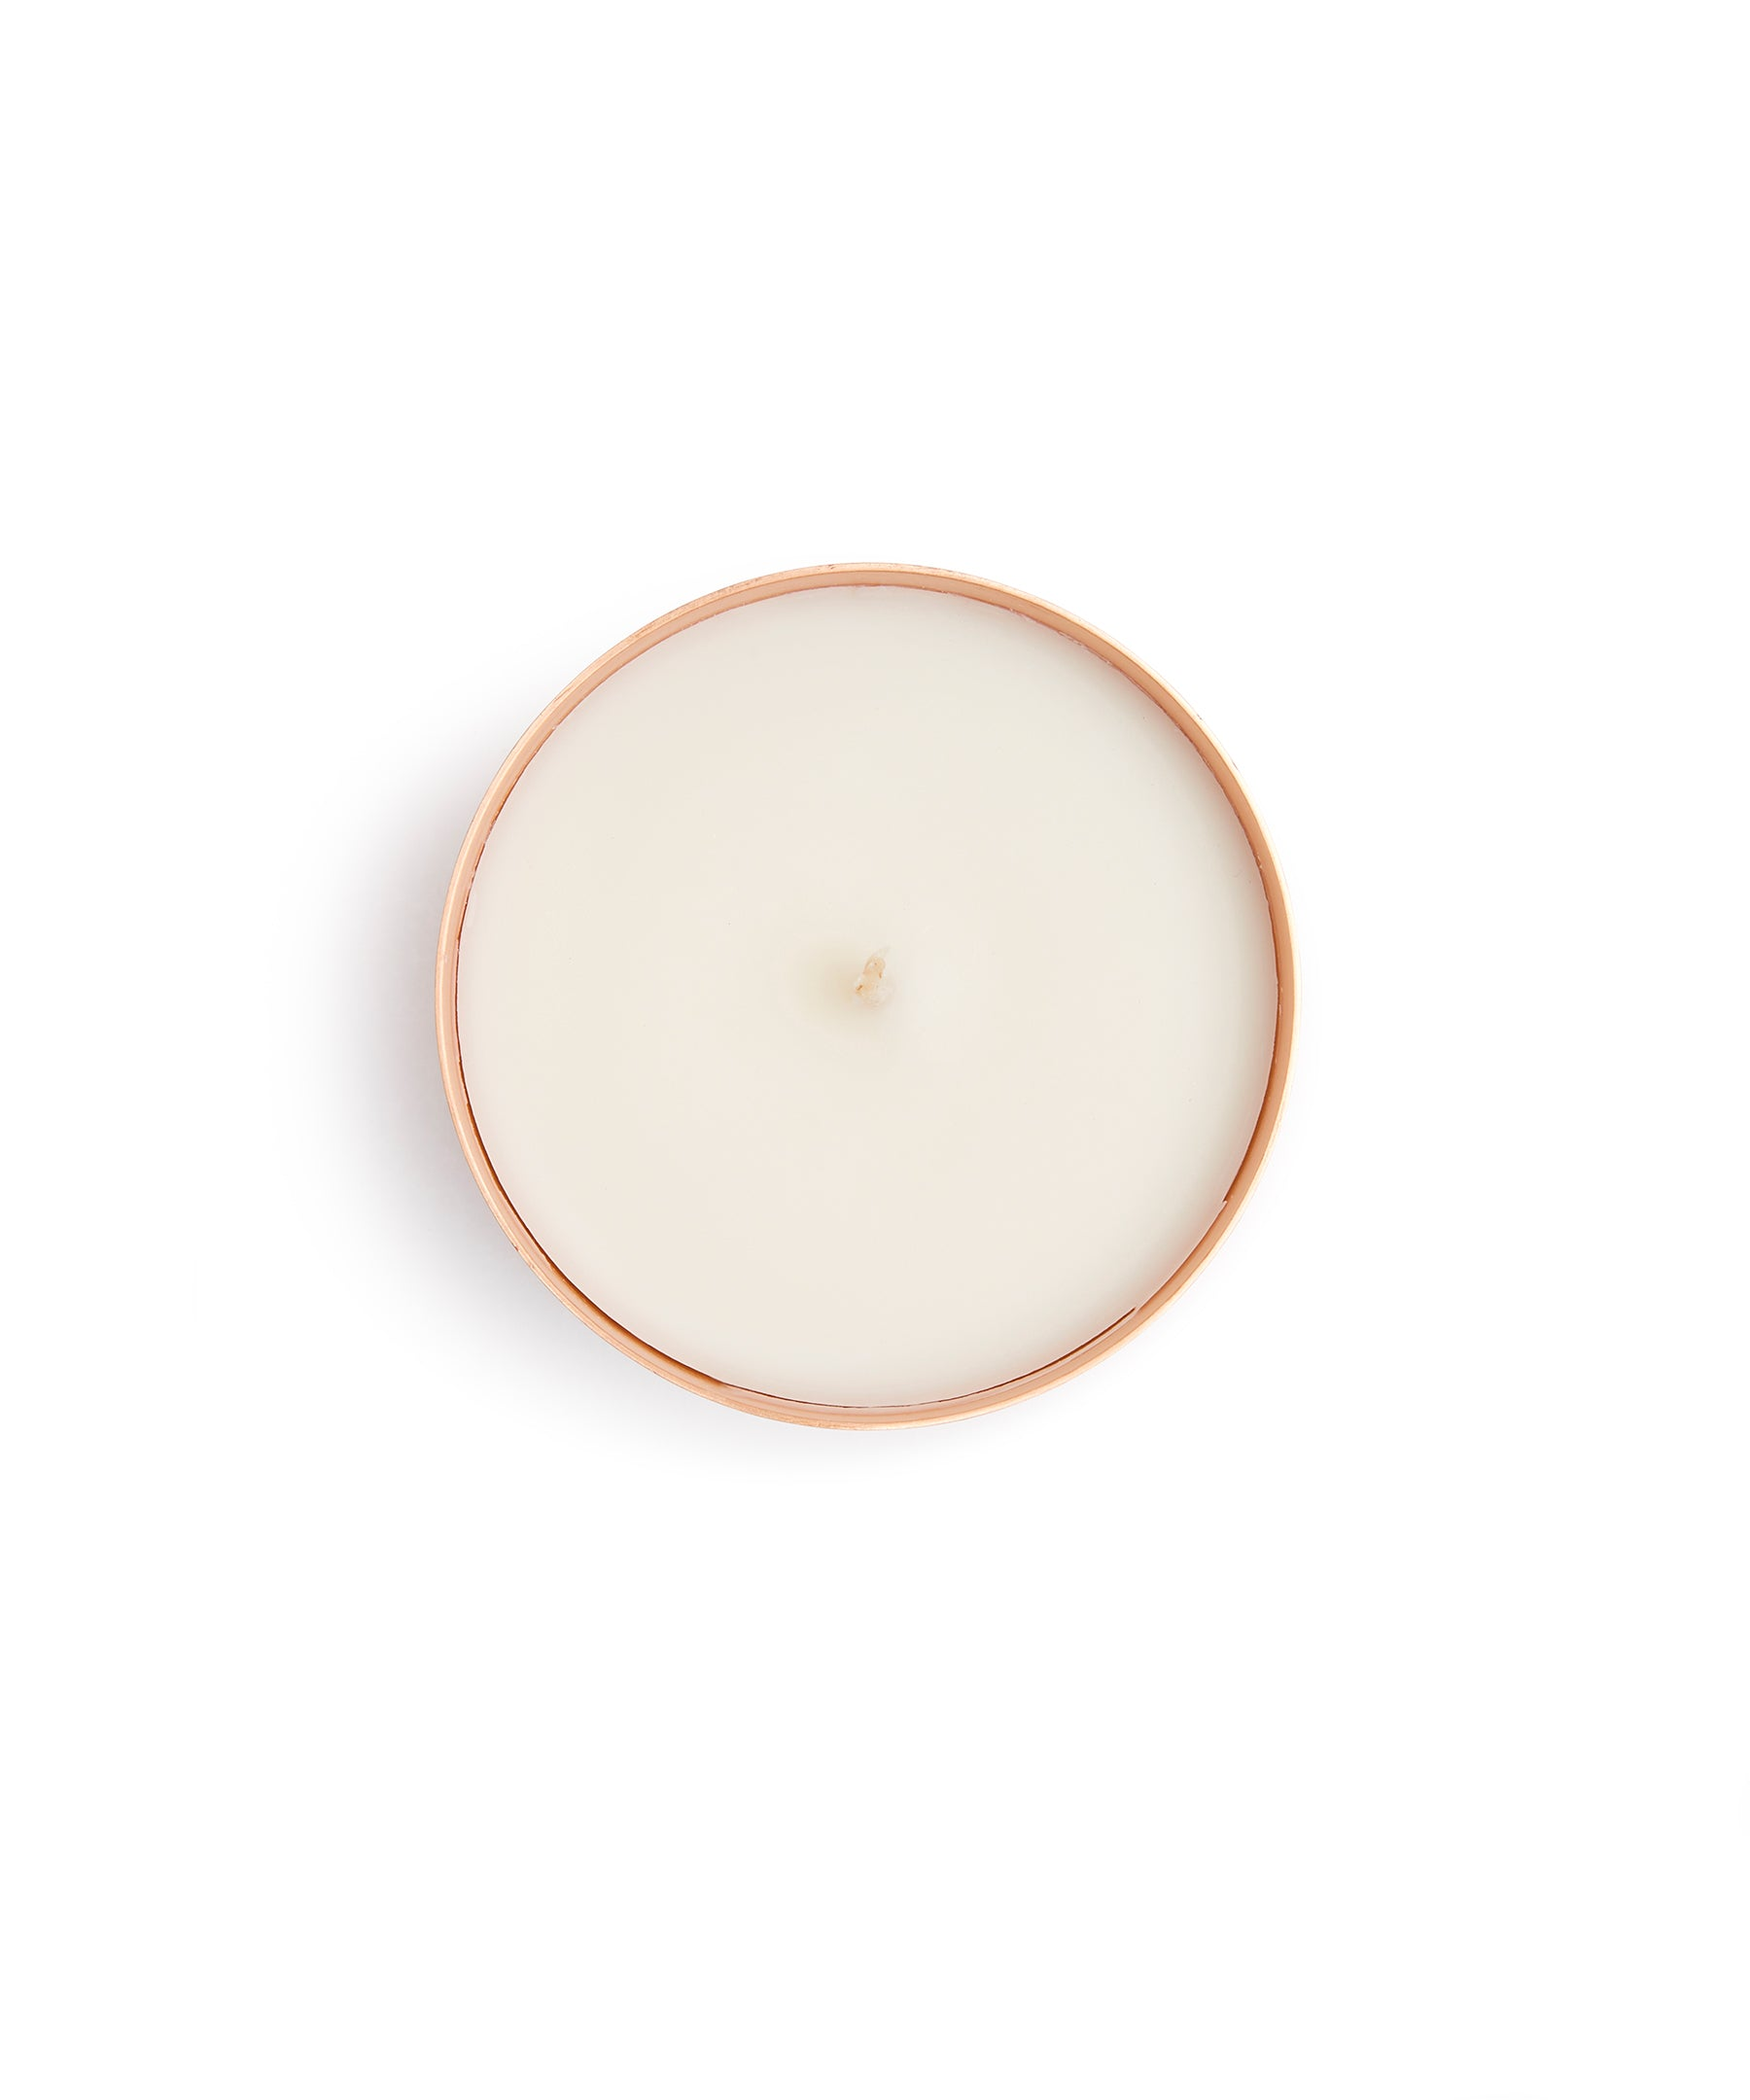 Eclectic London Candle Medium by Tom Dixon